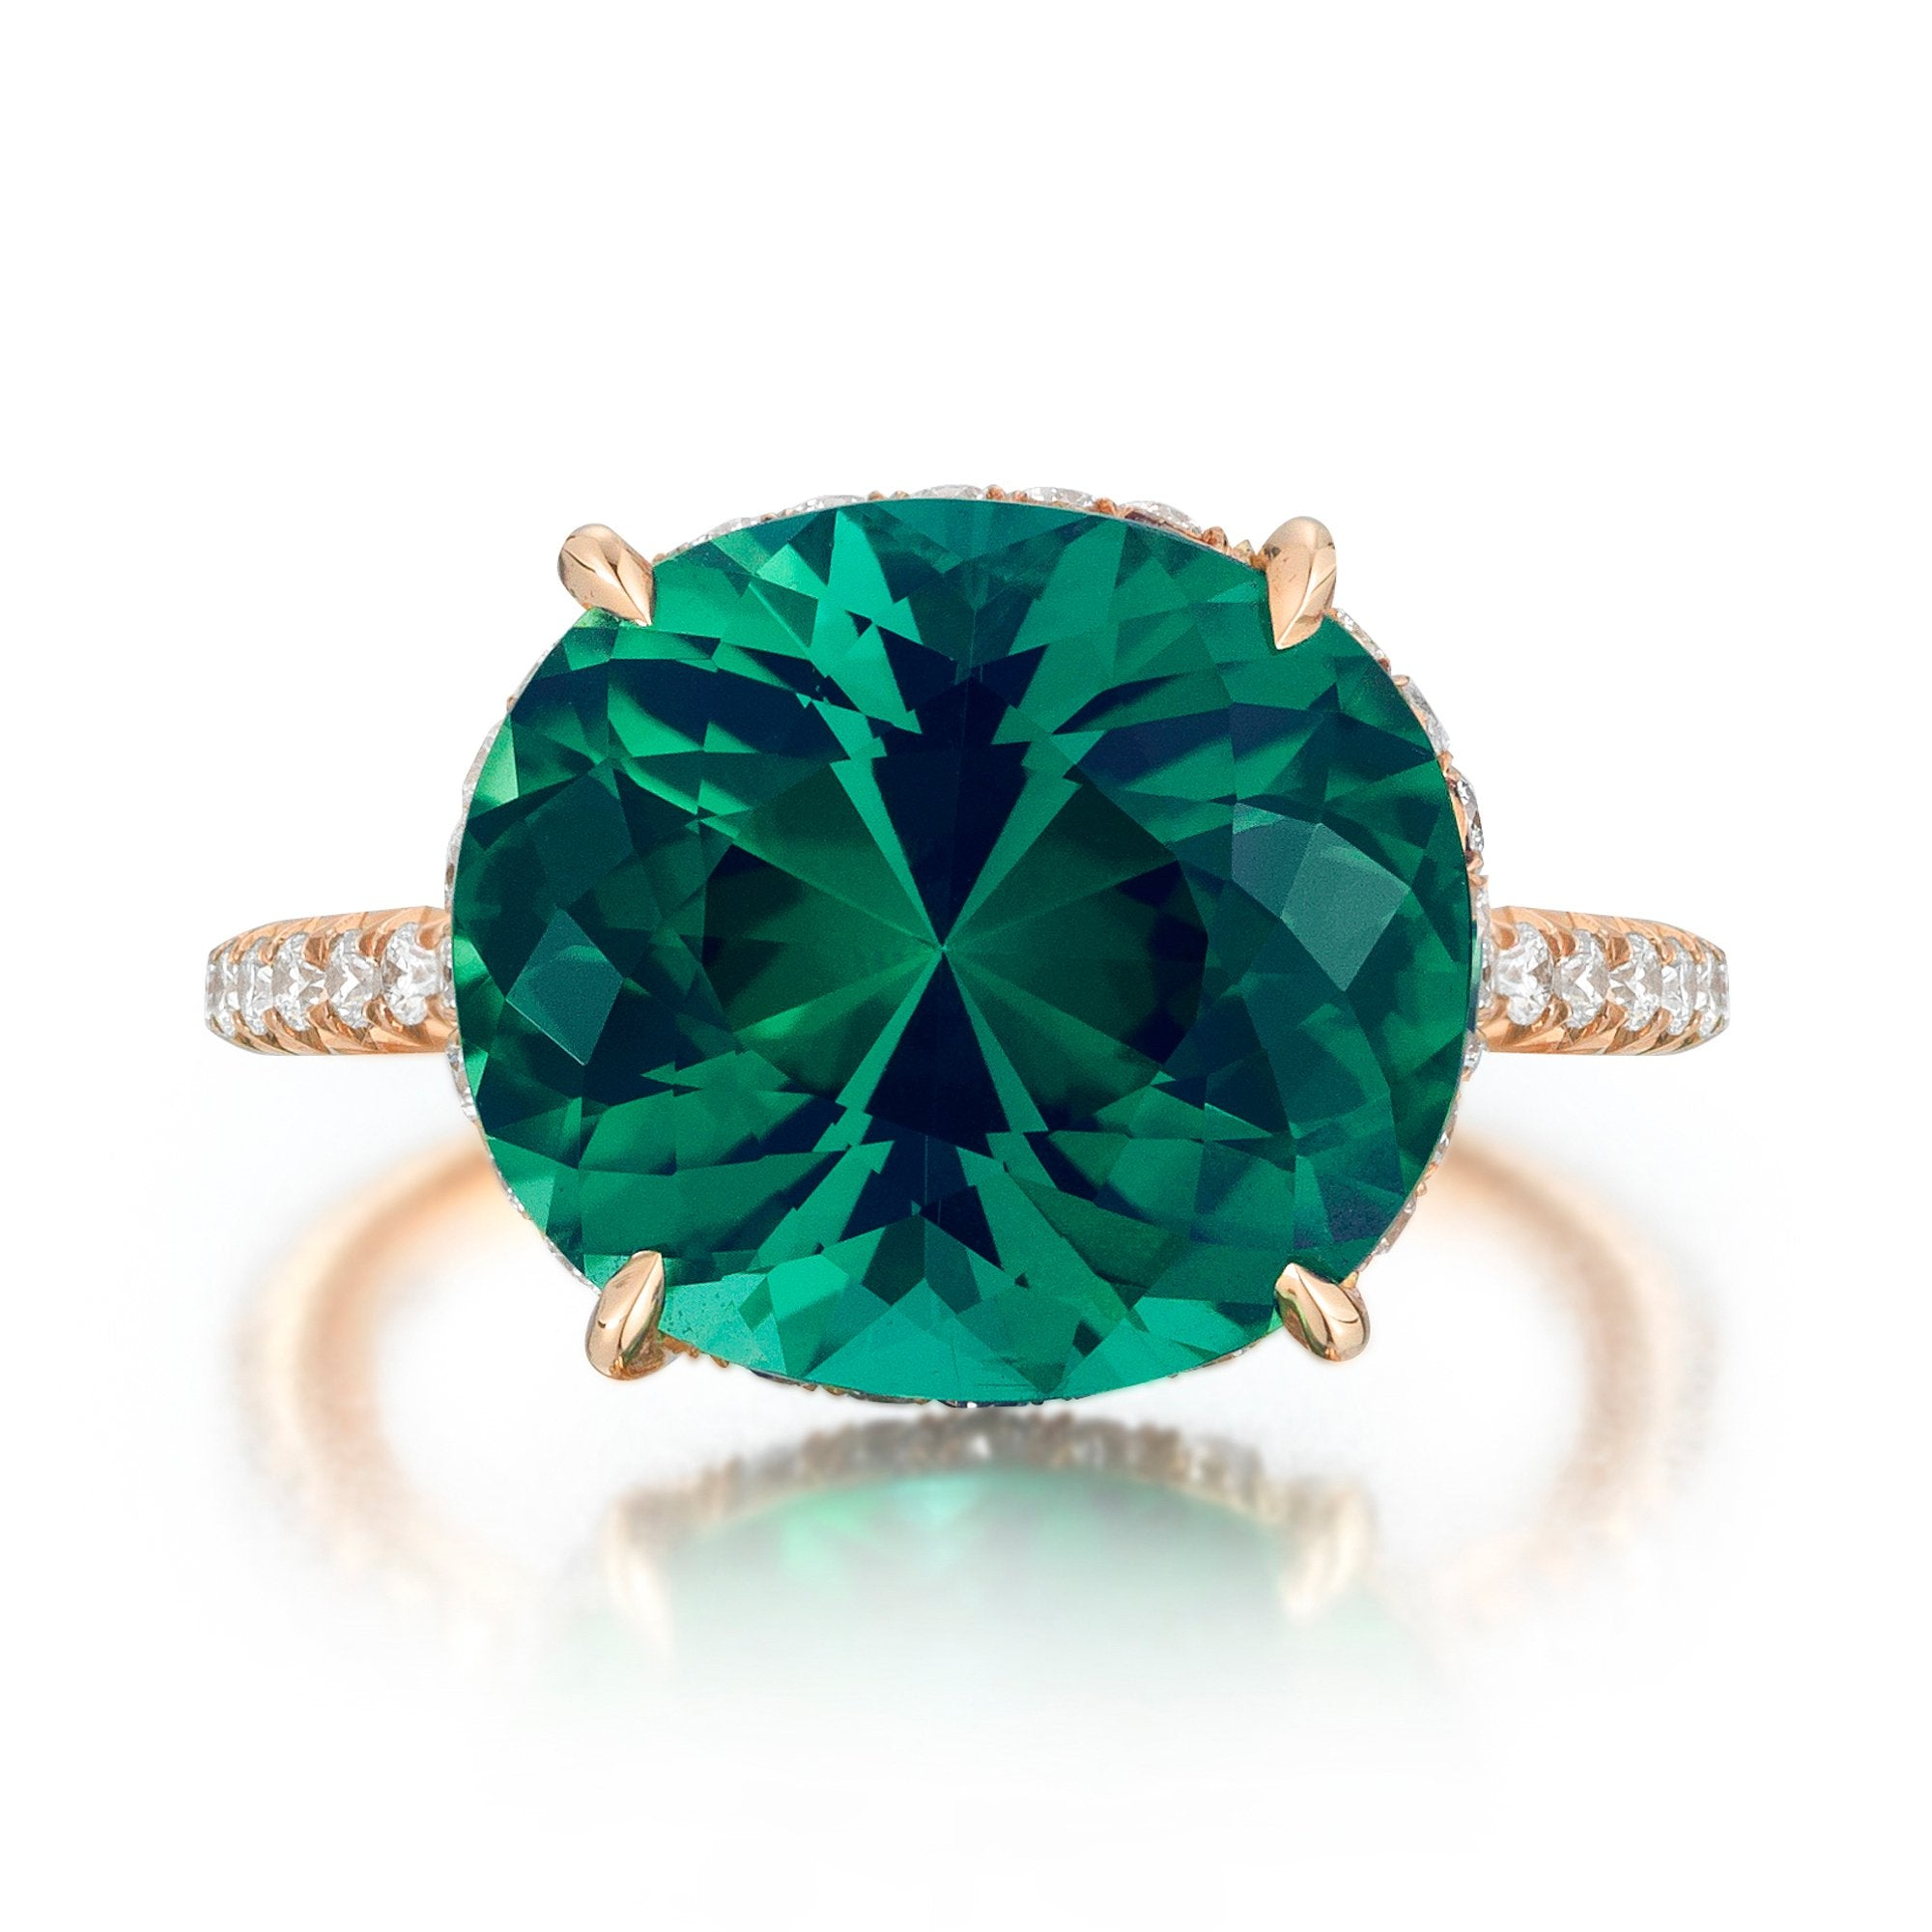 raw emerald thoughts products delicate emeral ring jewelry rings aquarian